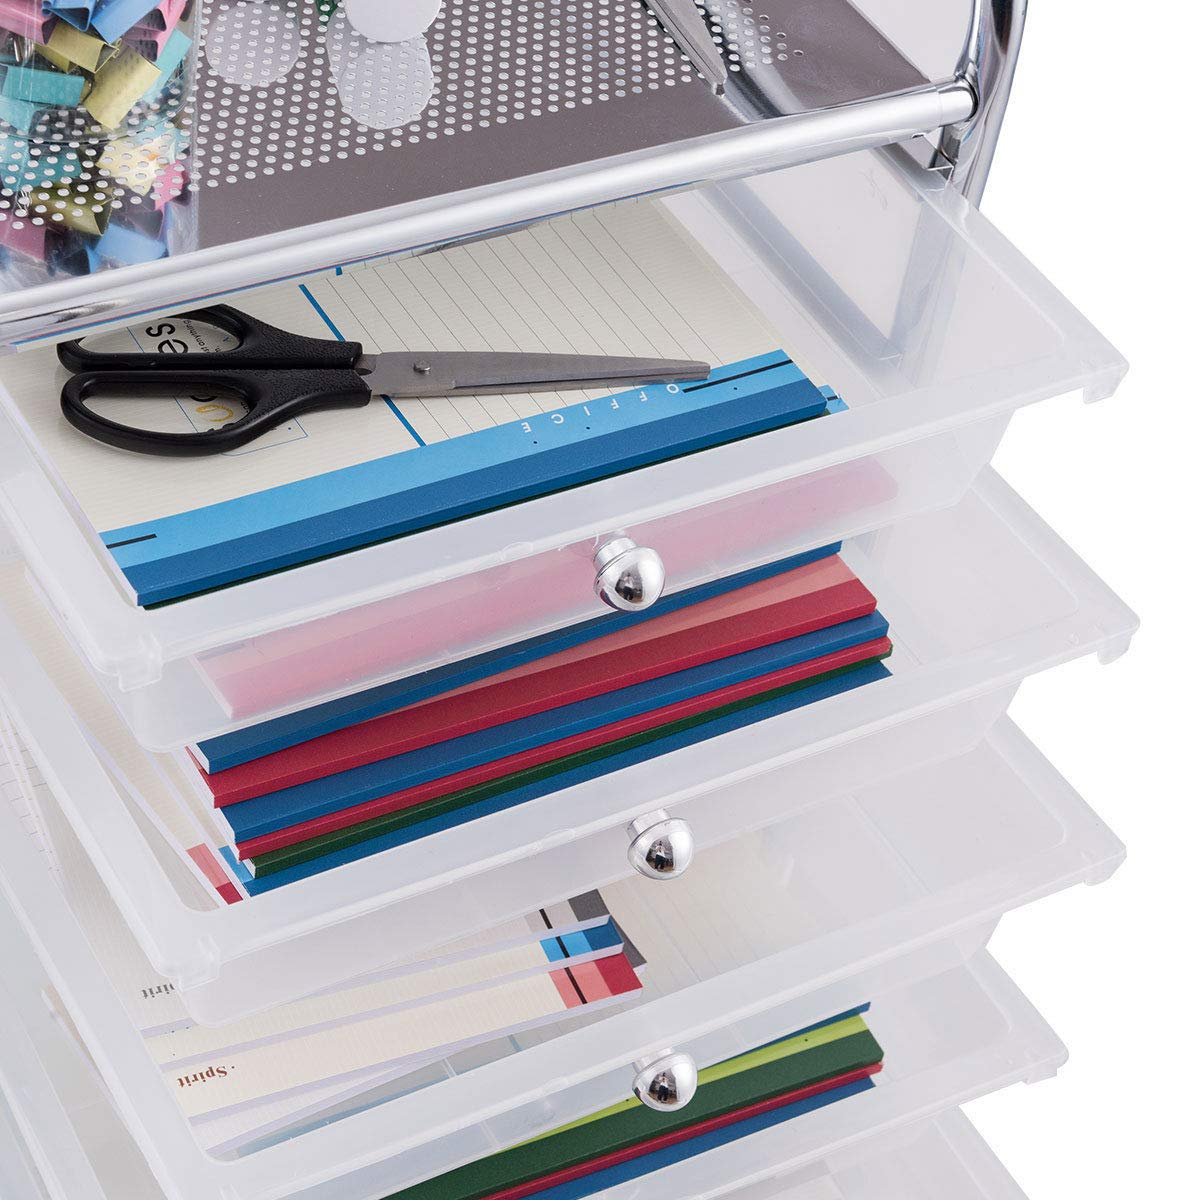 Giantex 10 Drawer Rolling Storage Cart Scrapbook Paper Office School Organizer (Clear) by Giantex (Image #7)